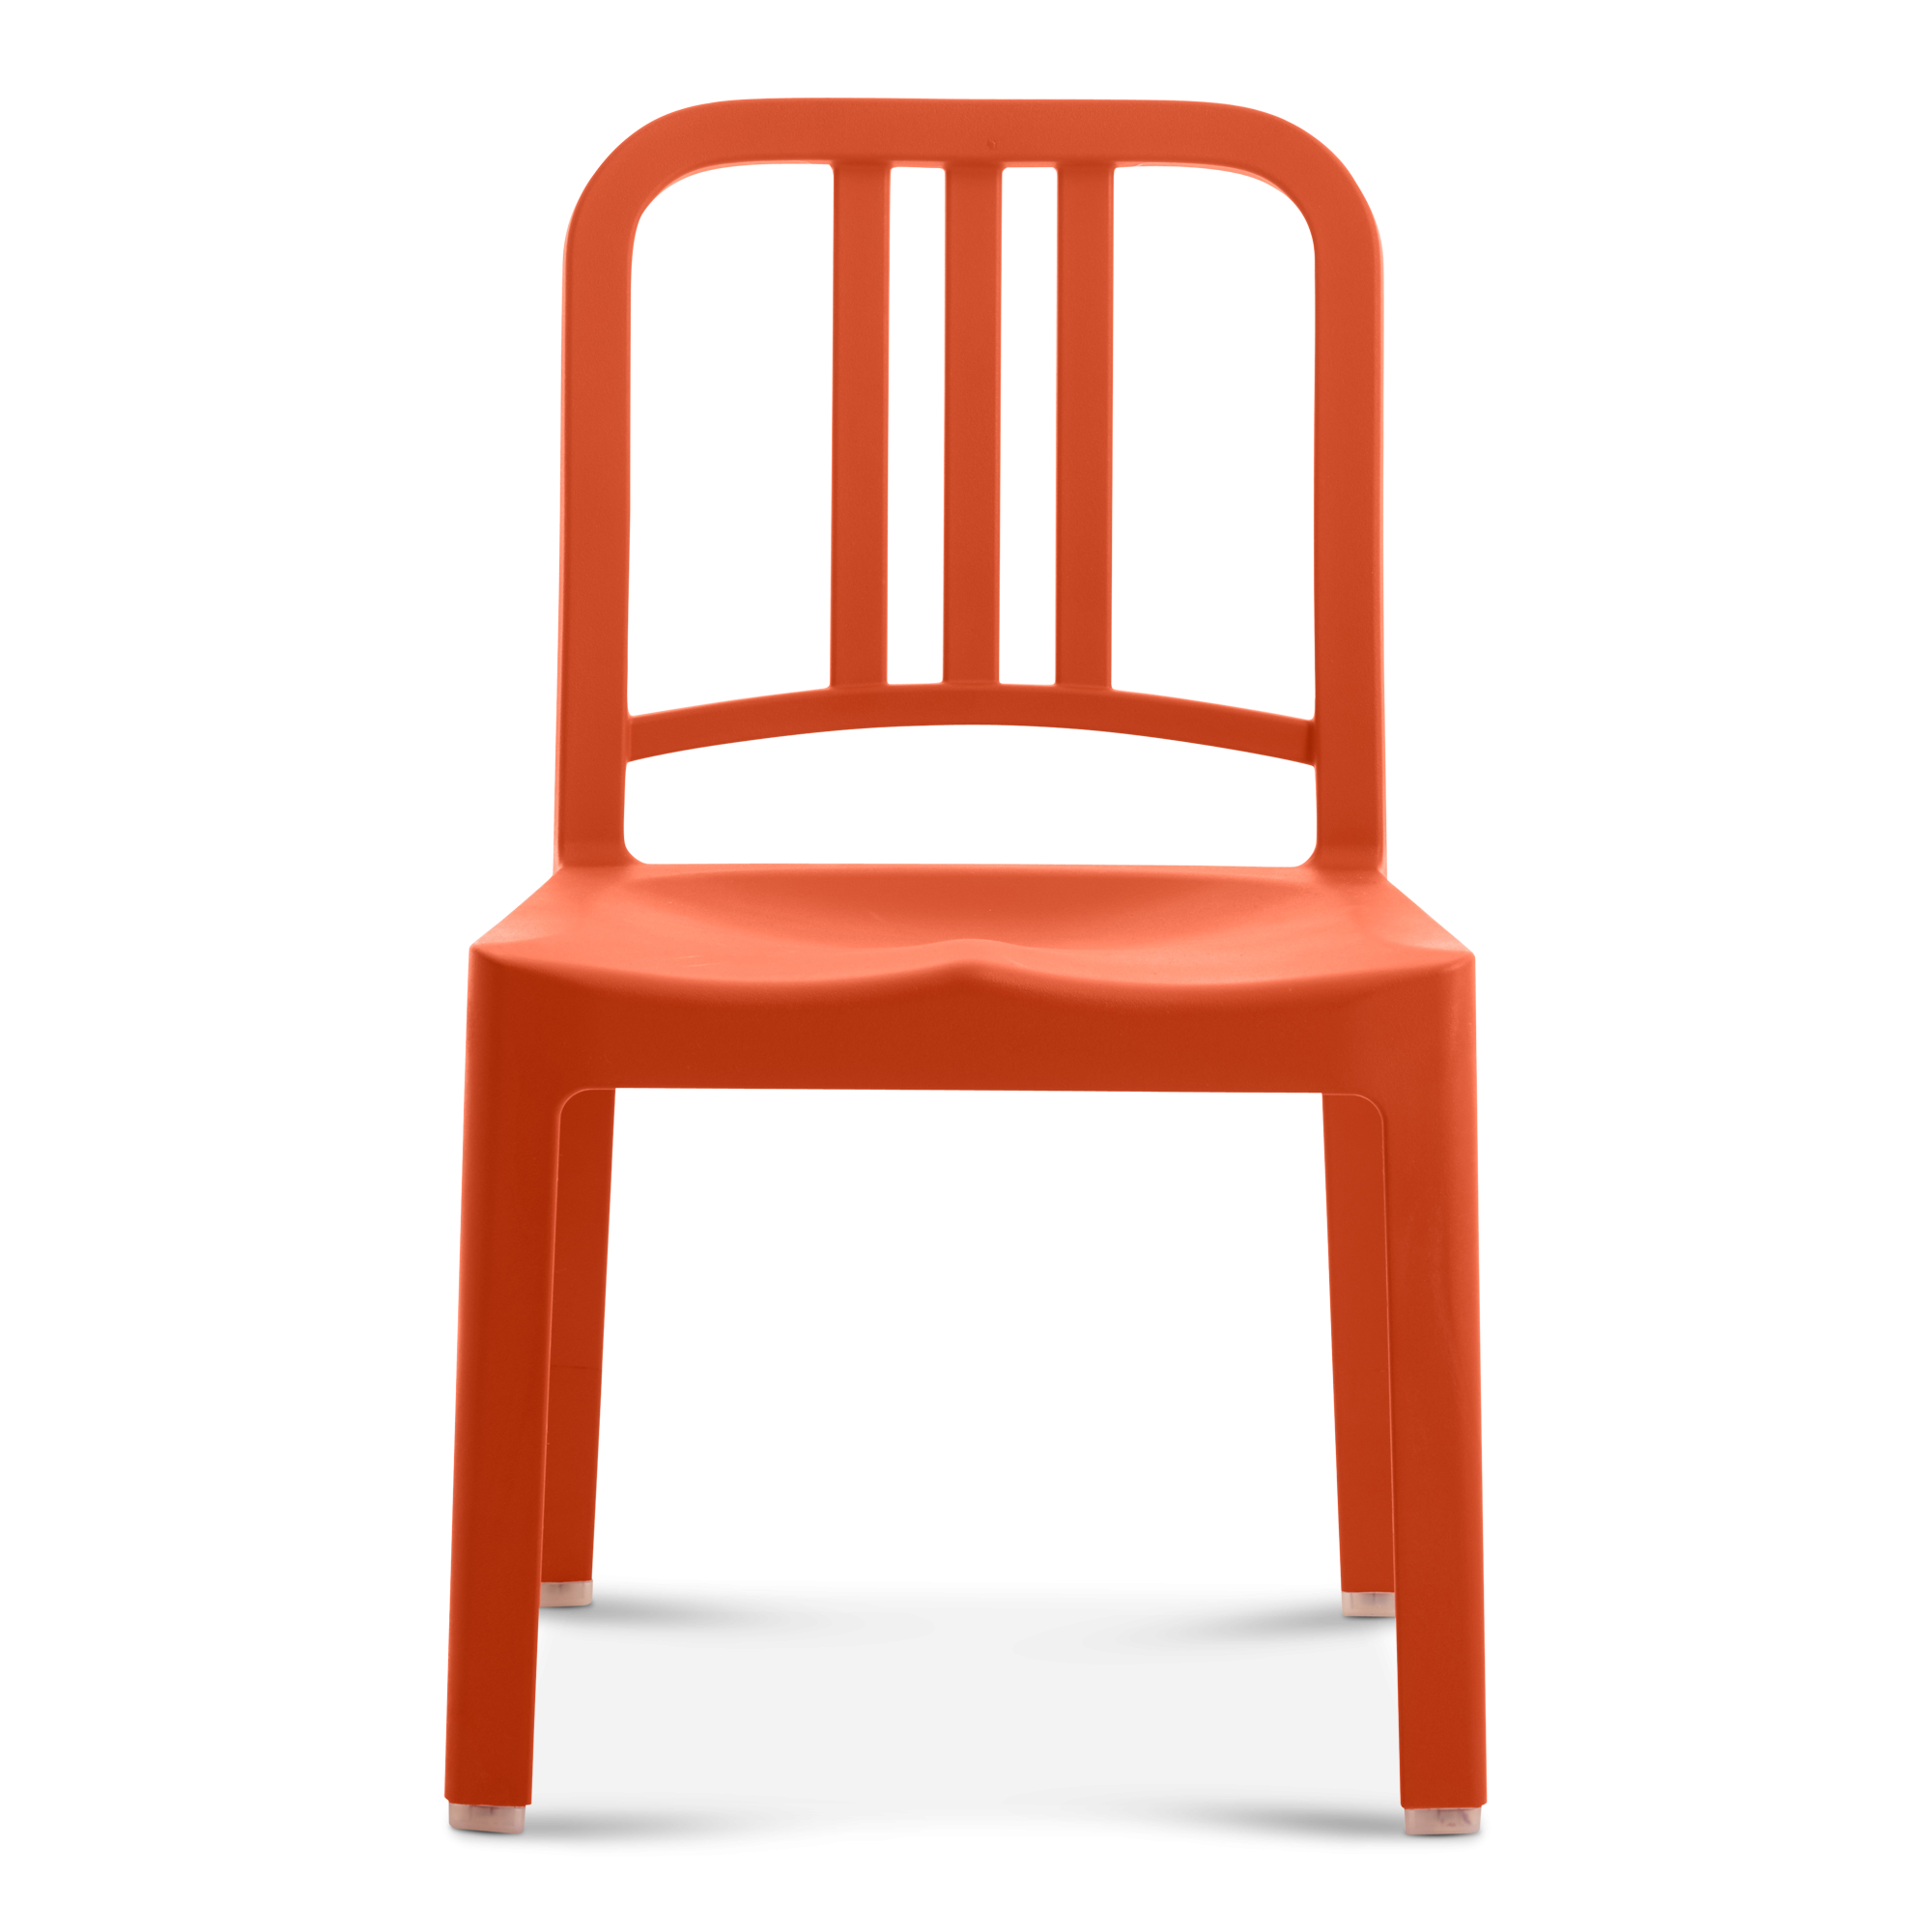 111-navy-mini-chair-persimmon